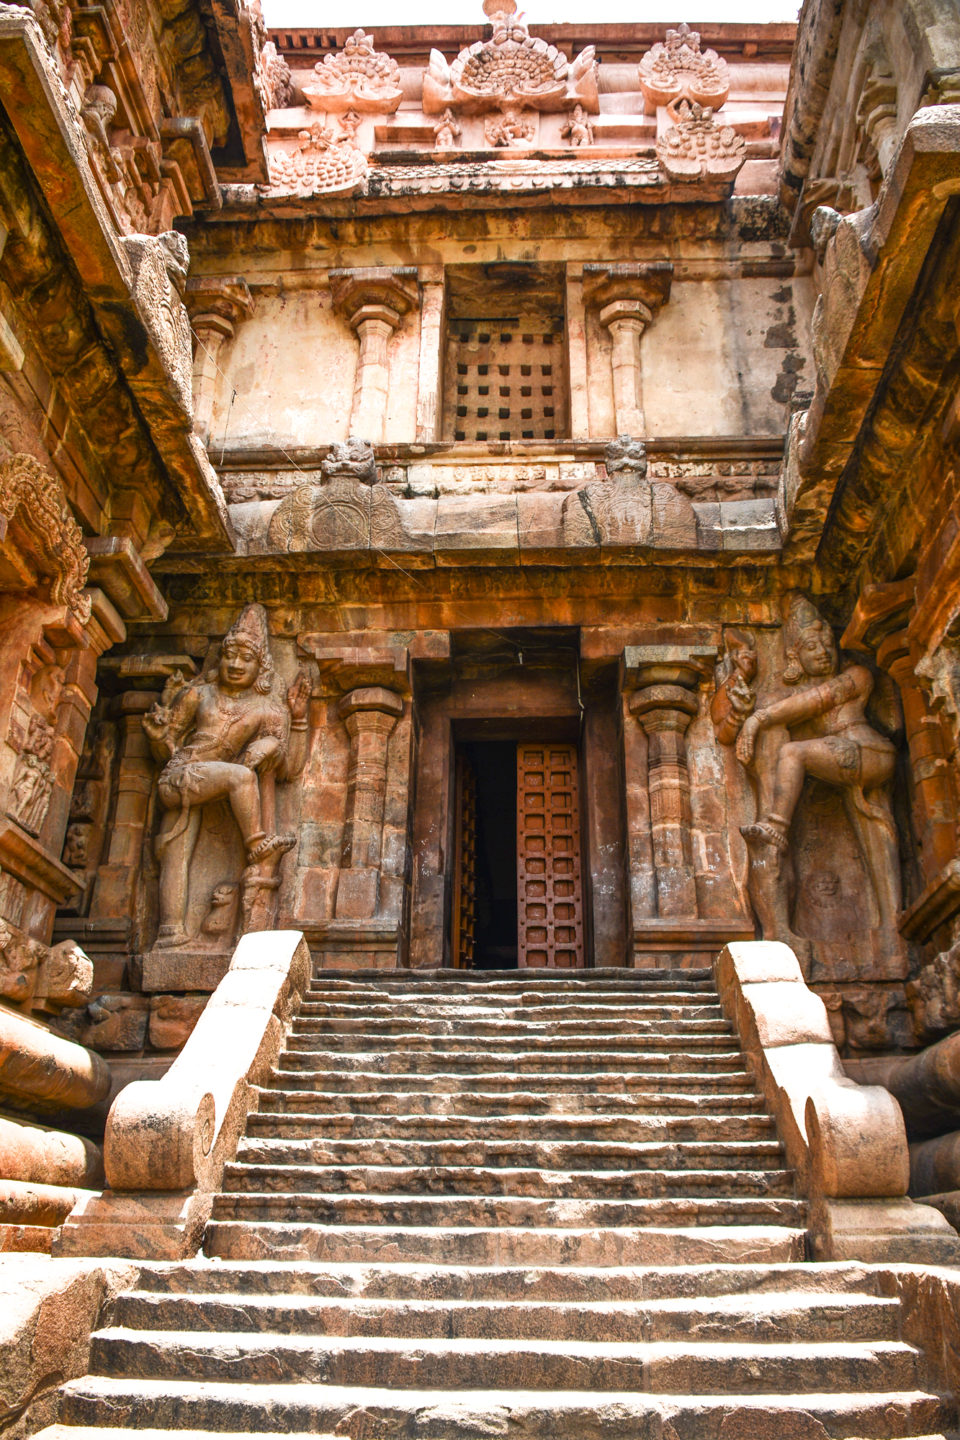 One of the temple entrances guarded by Dwarabalas